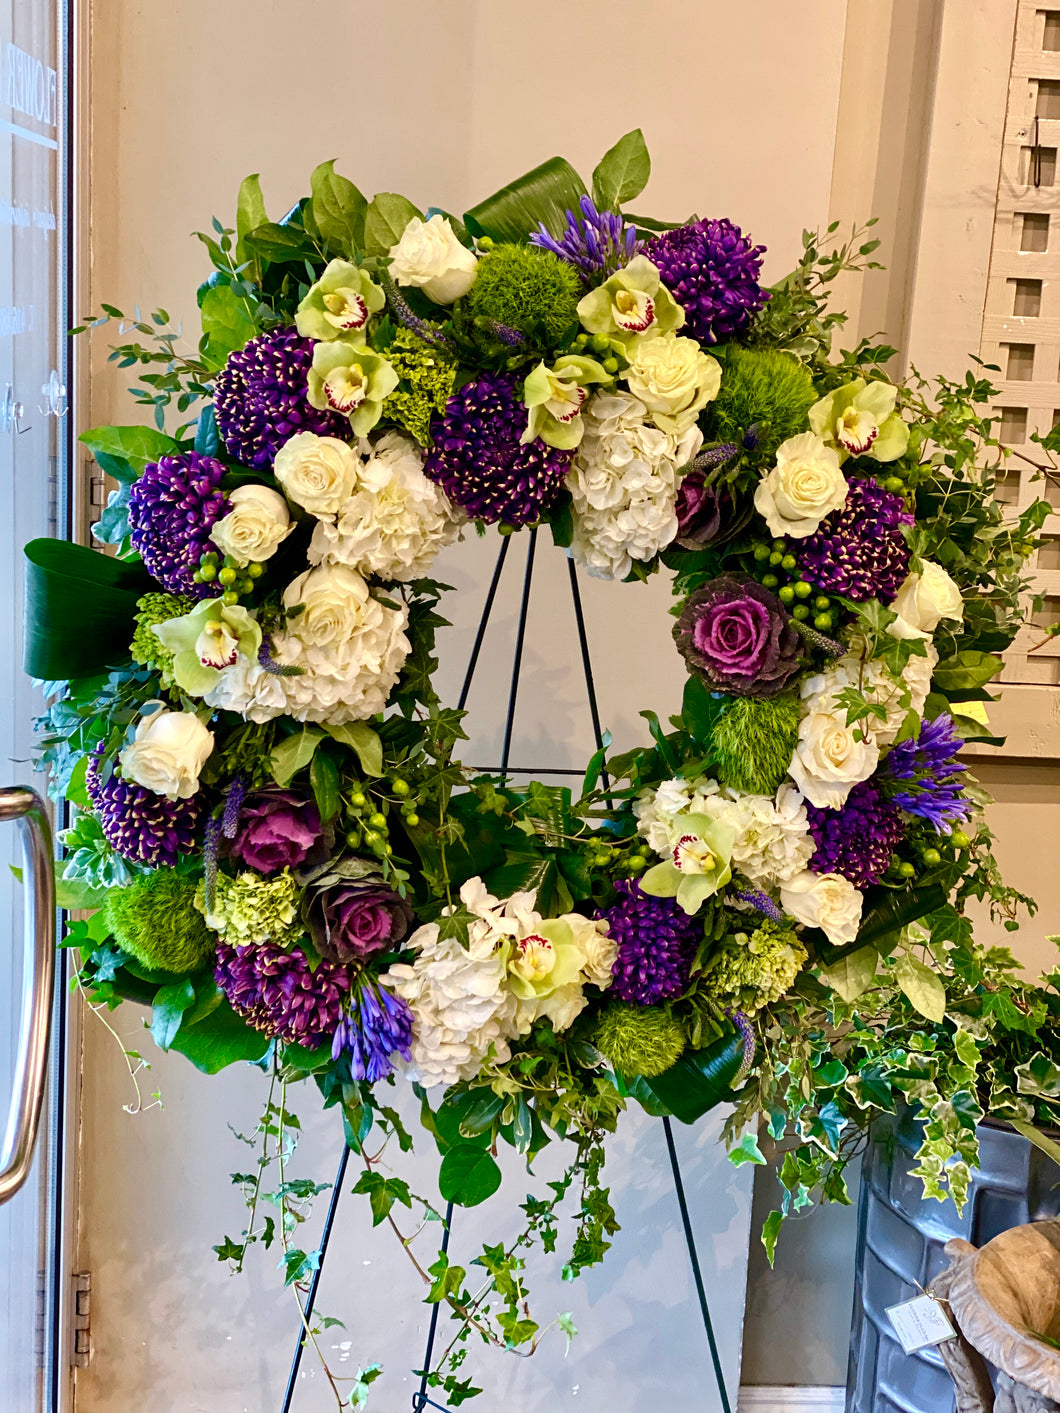 FNS1 - Modern White and Purple Wreath - Flowerplustoronto